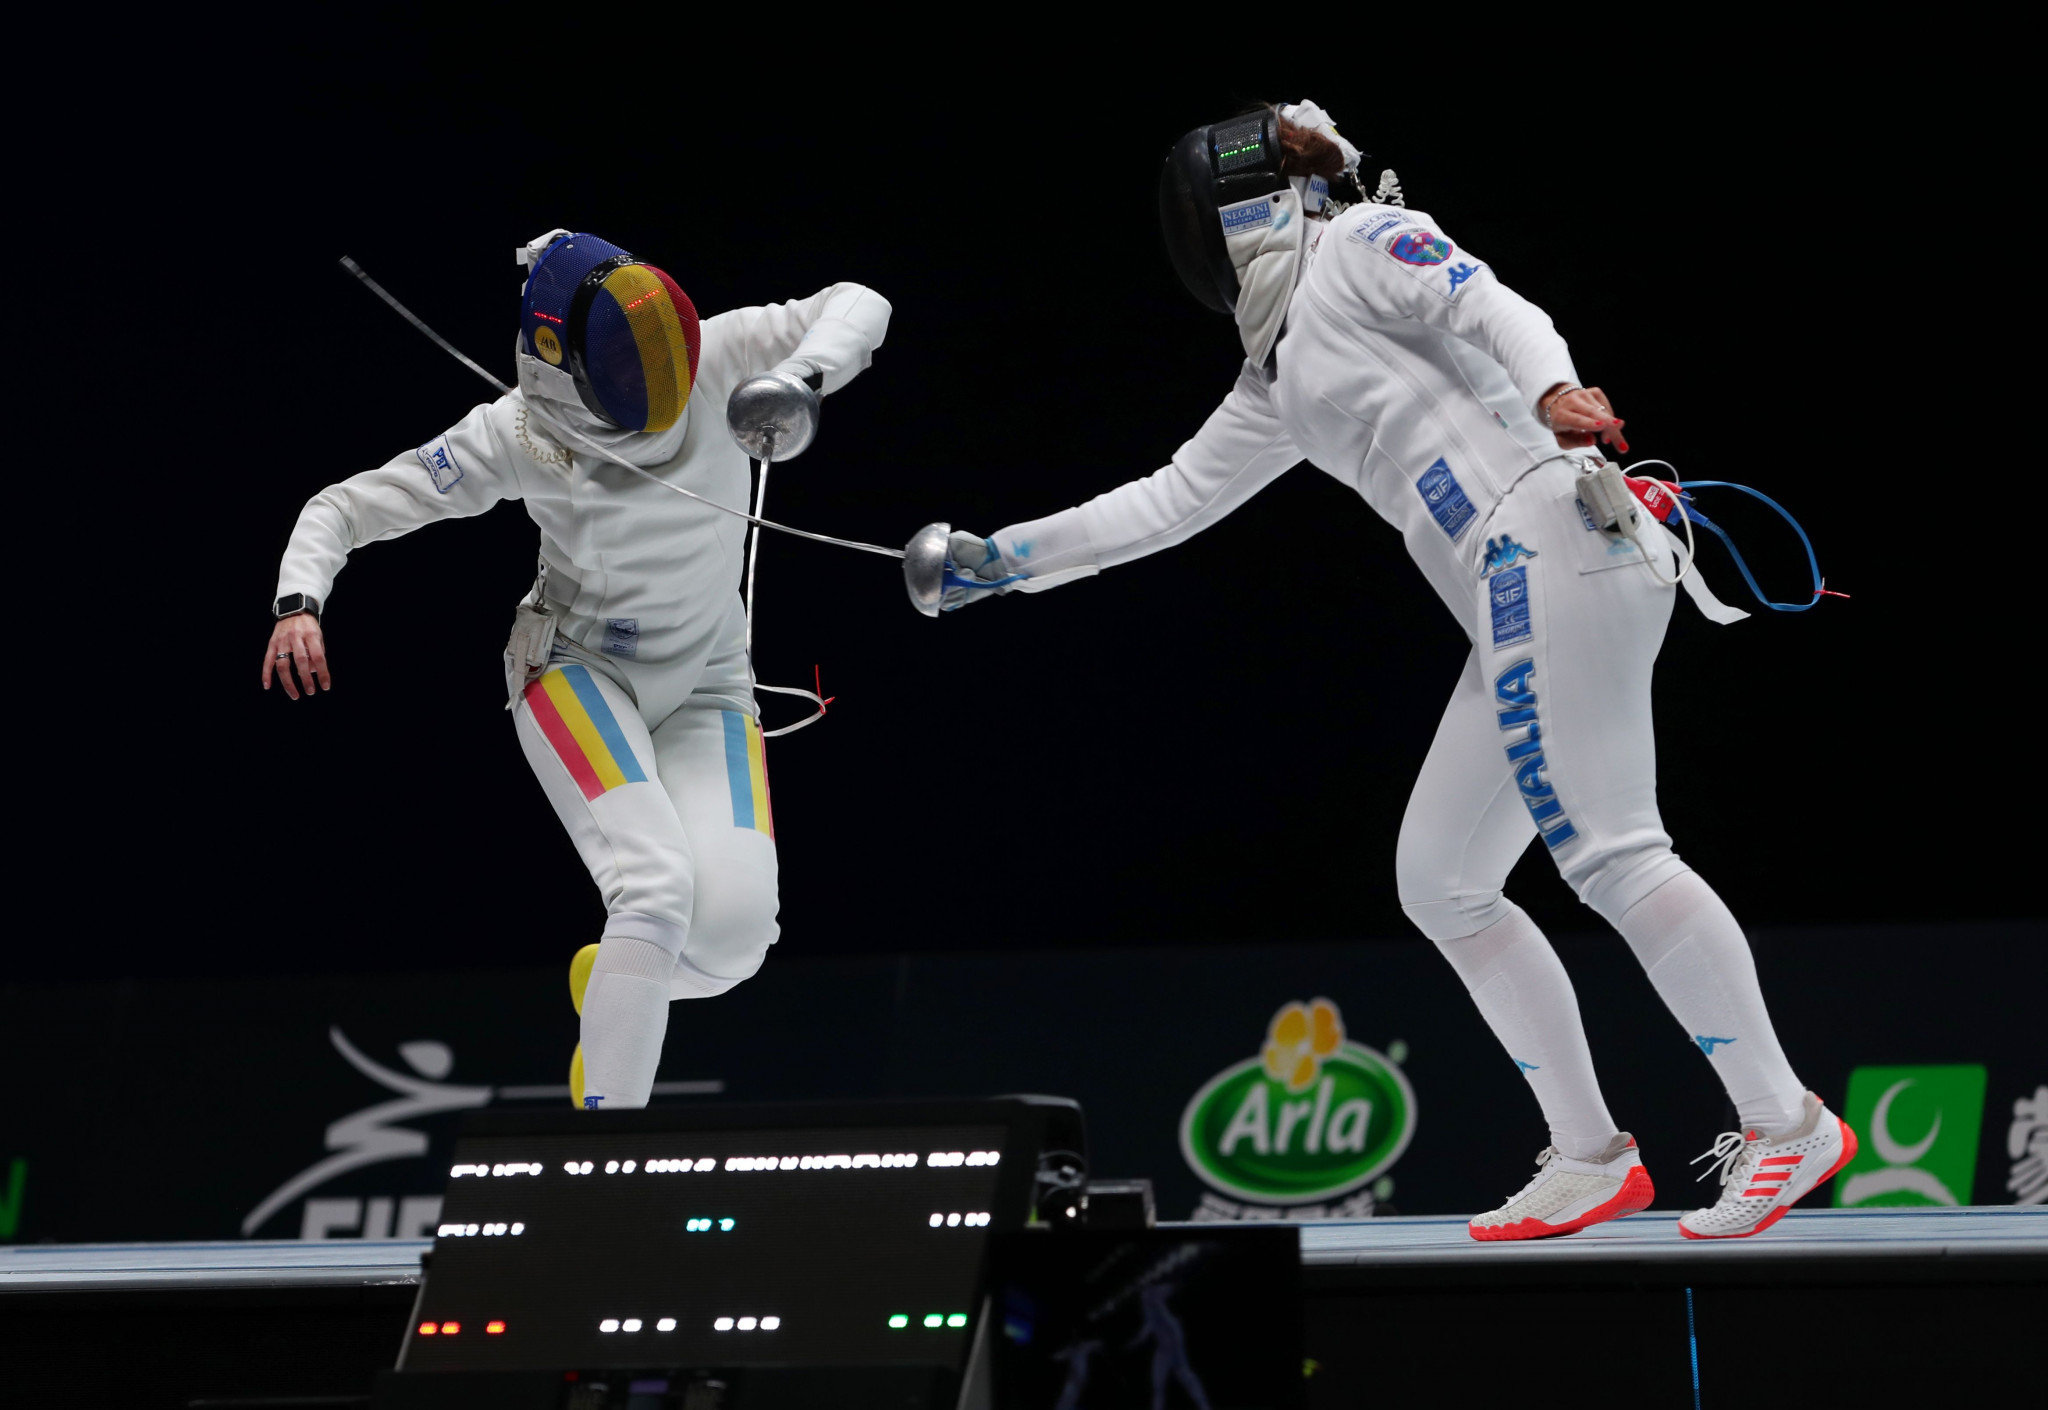 Mara Navarria of Italy also won her first individual World Championships gold medal ©Getty Images